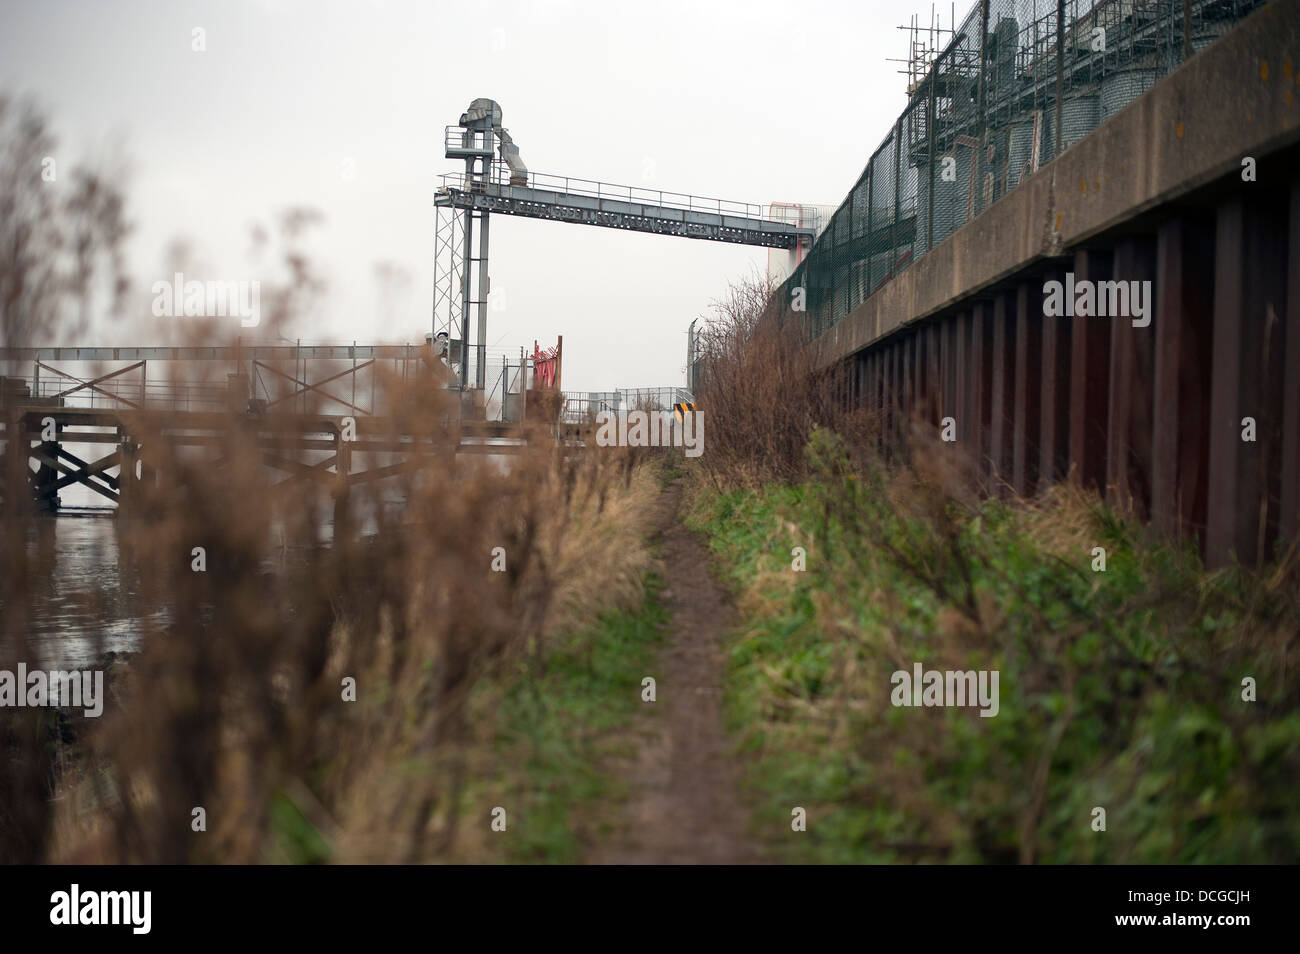 A towpath leads to a commercial ship loading and unloading area on the River Thames - Stock Image